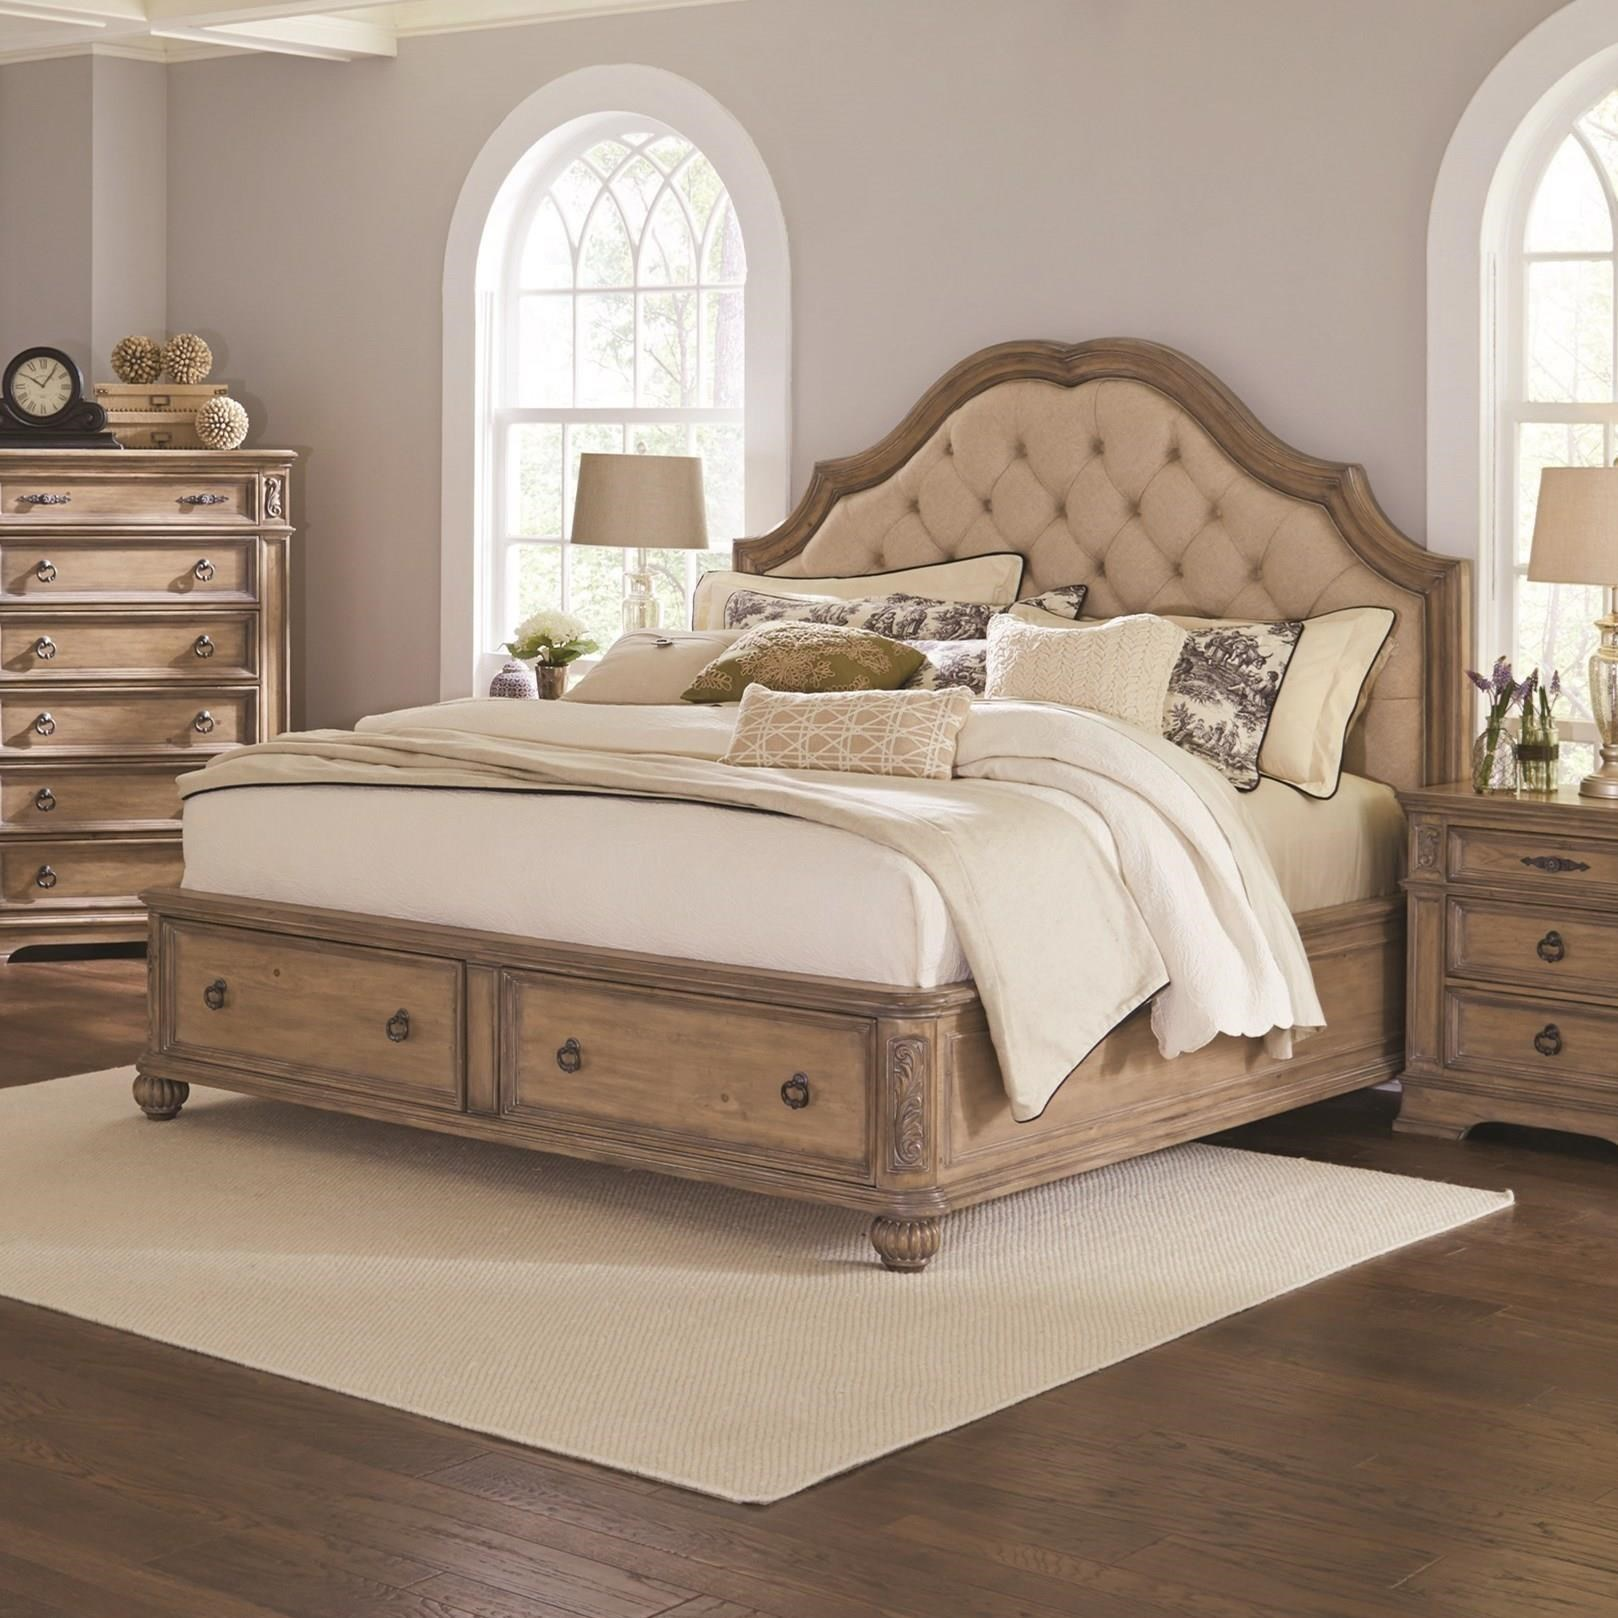 Elegant Queen Storage Bed